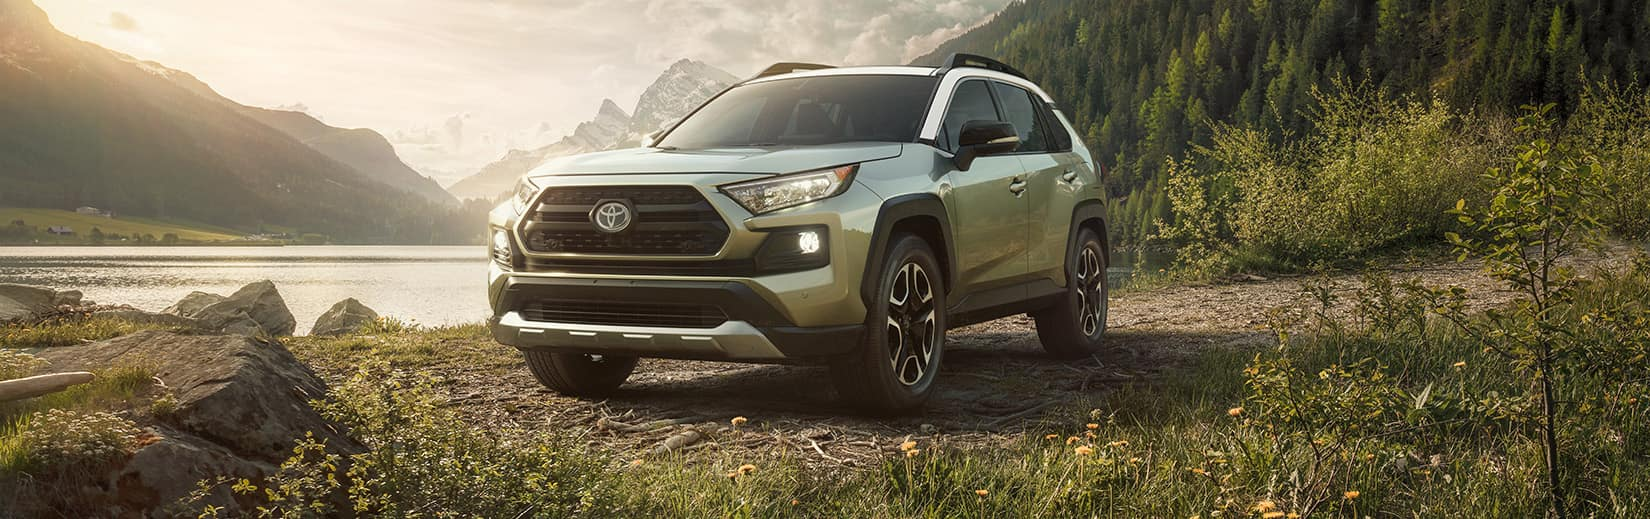 Comparison of the Toyota RAV4 and the Honda CR-V crossovers at Lancaster Toyota | Green 2019 RAV4 parked in nature